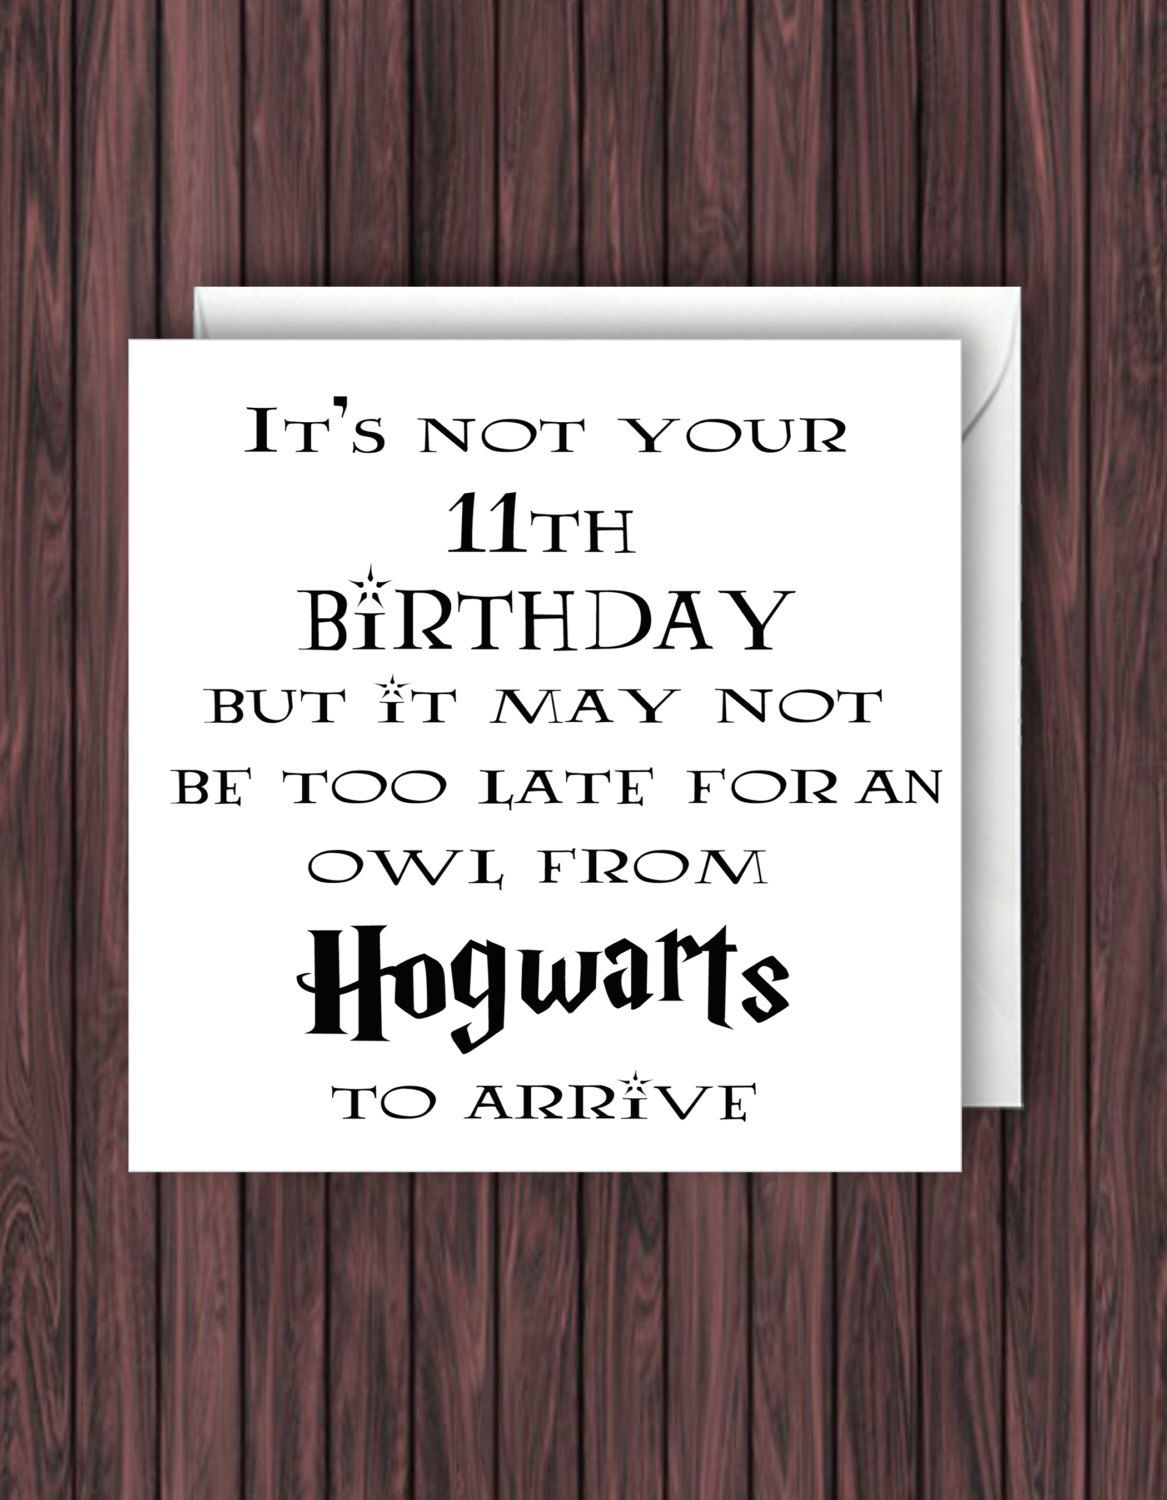 hogwarts letter birthday card ; 846c6d70d3479262268fad46f39a5bed